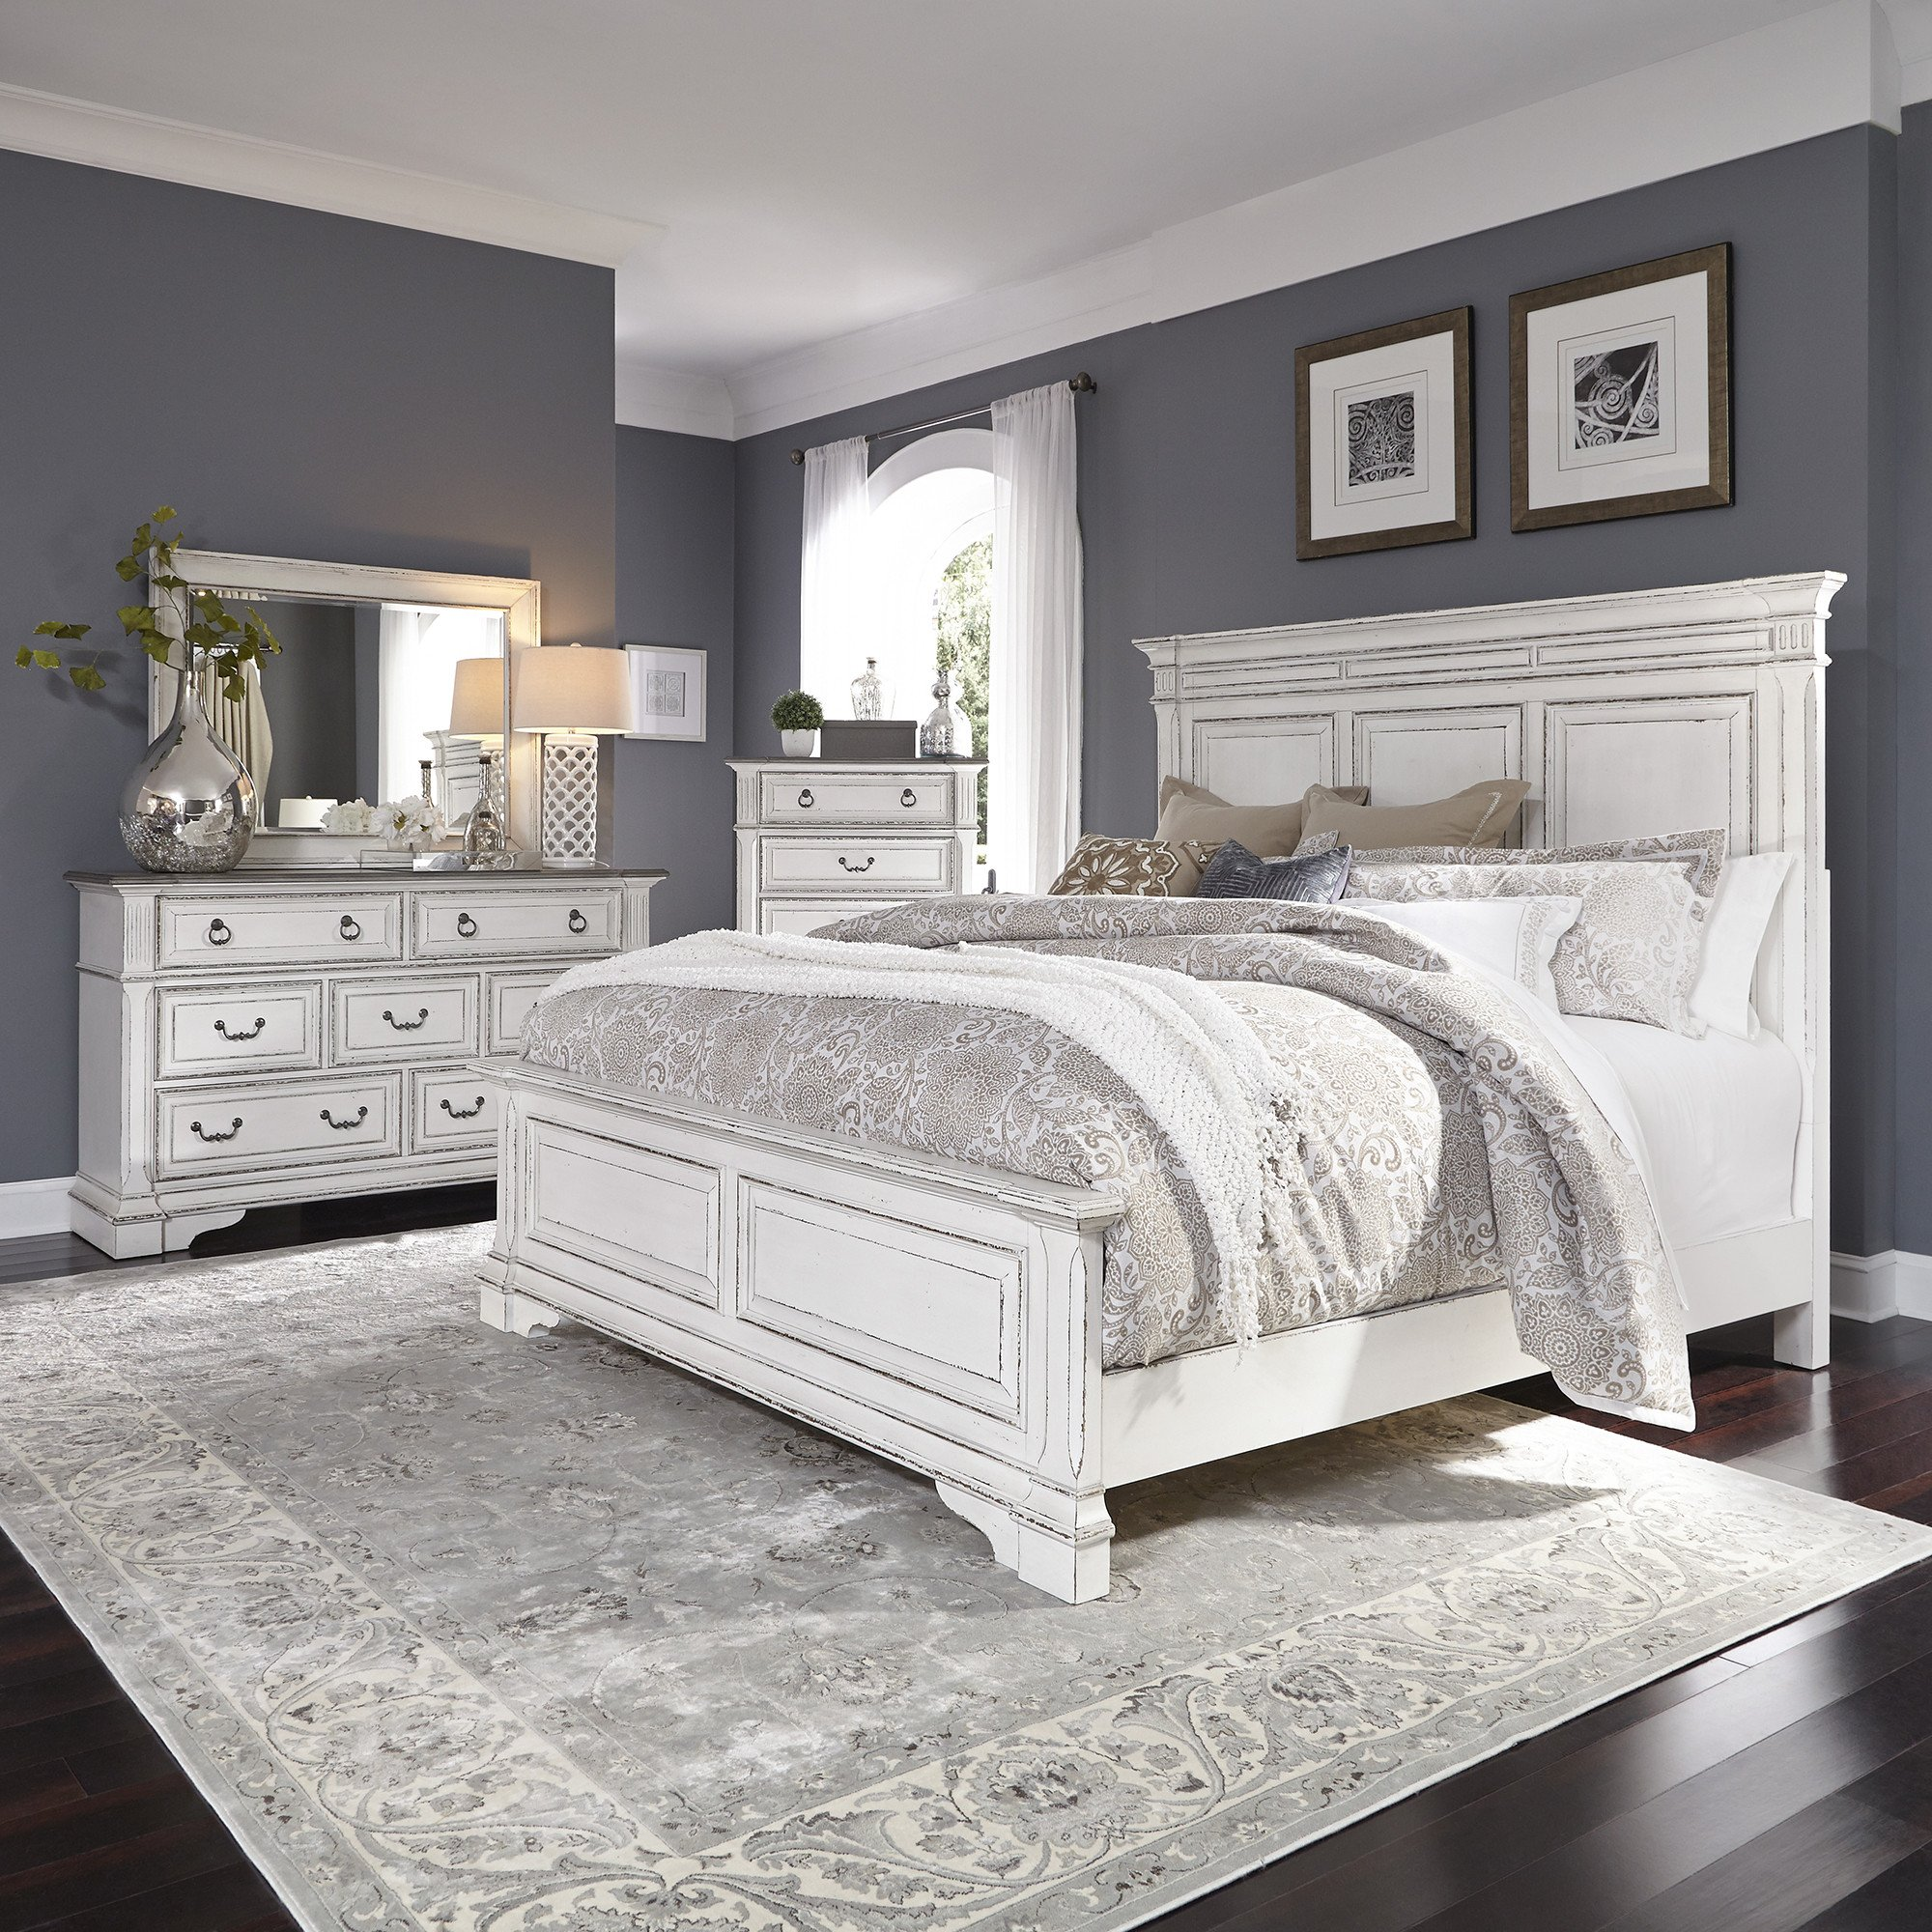 Farmers Furniture Bedroom Set Elegant Homepage Title